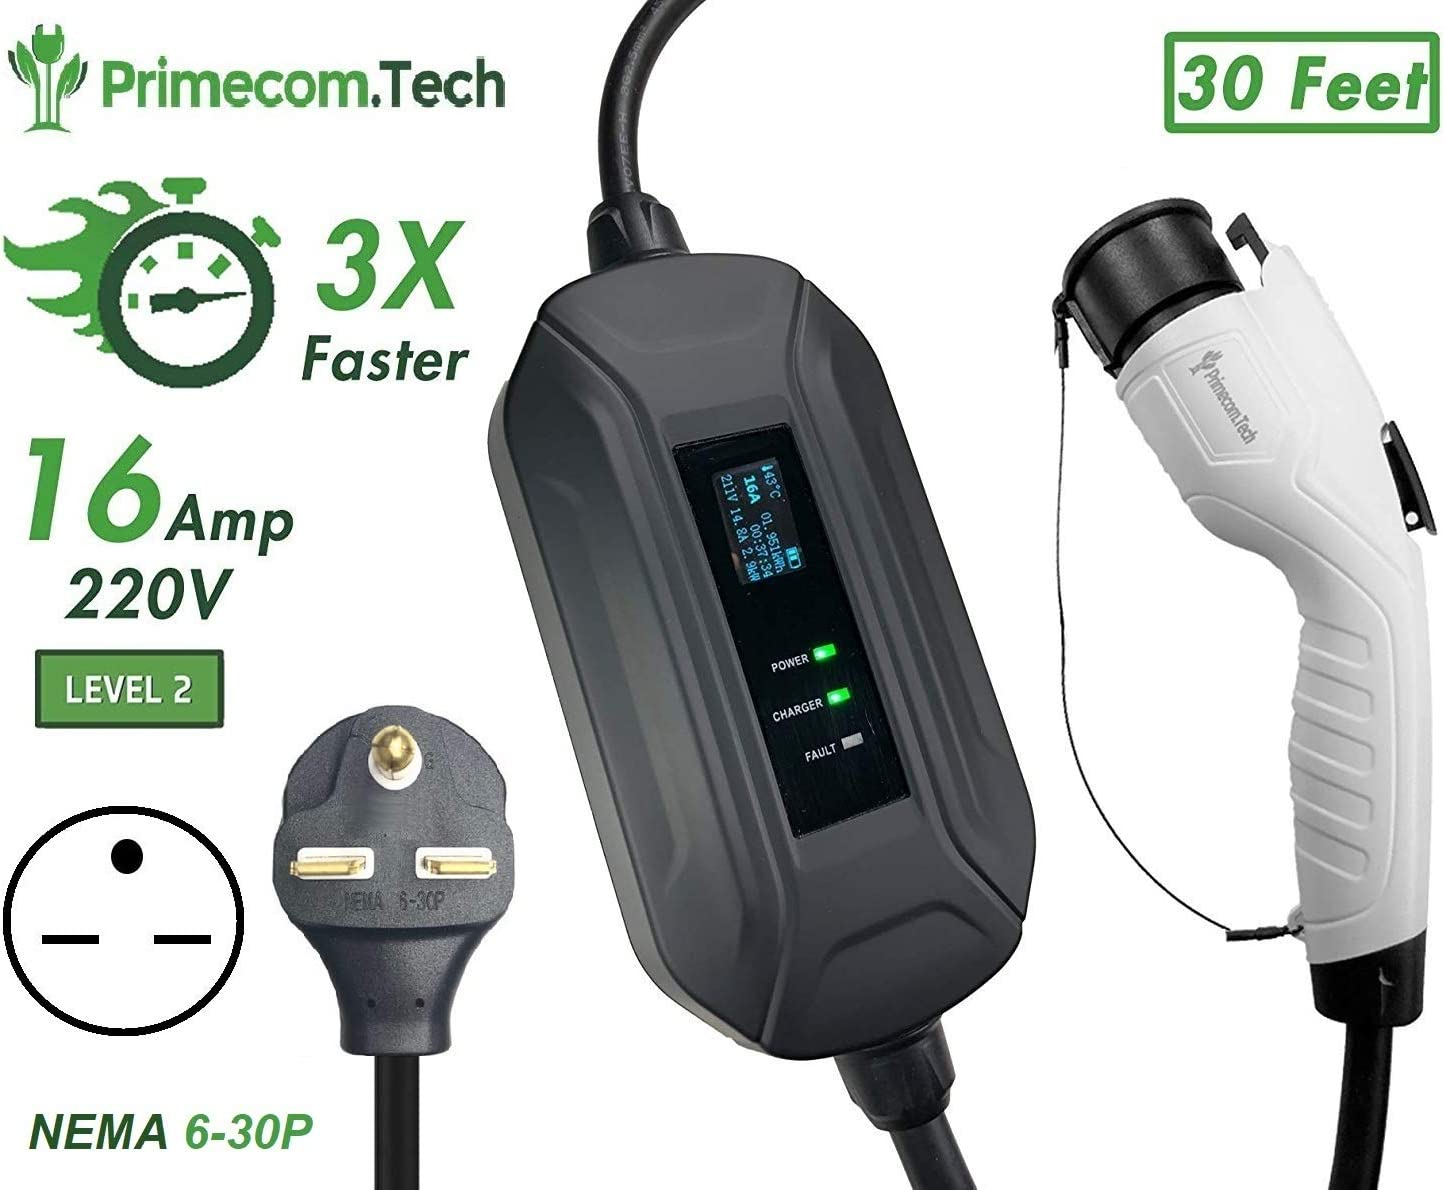 220V // 240Volt, 16Amp 30 EV Portable EVSE Smart Electric Car Charger PRIMECOM Level 2 Electric Vehicle and 50 Feet Lengths Charger 14-50P, 40 Feet 40